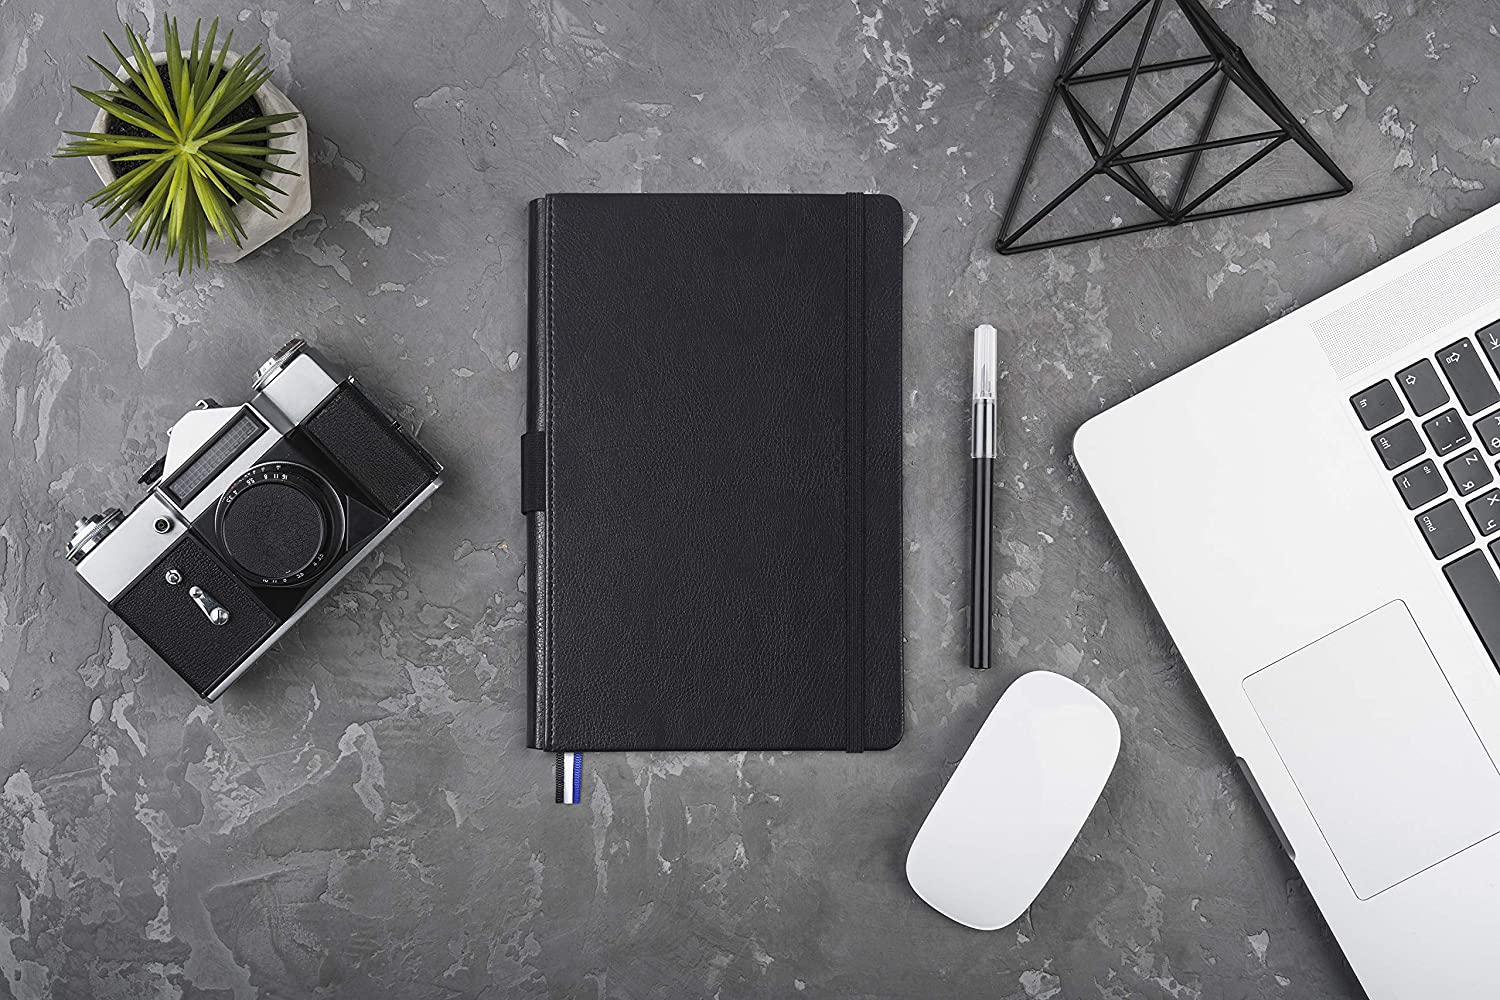 5.25 x 8.25 inch Leather Cover Dotted Journal Bullet Notebook with Pen Holder Black, Dot Grid 100 GSM Premium Paper